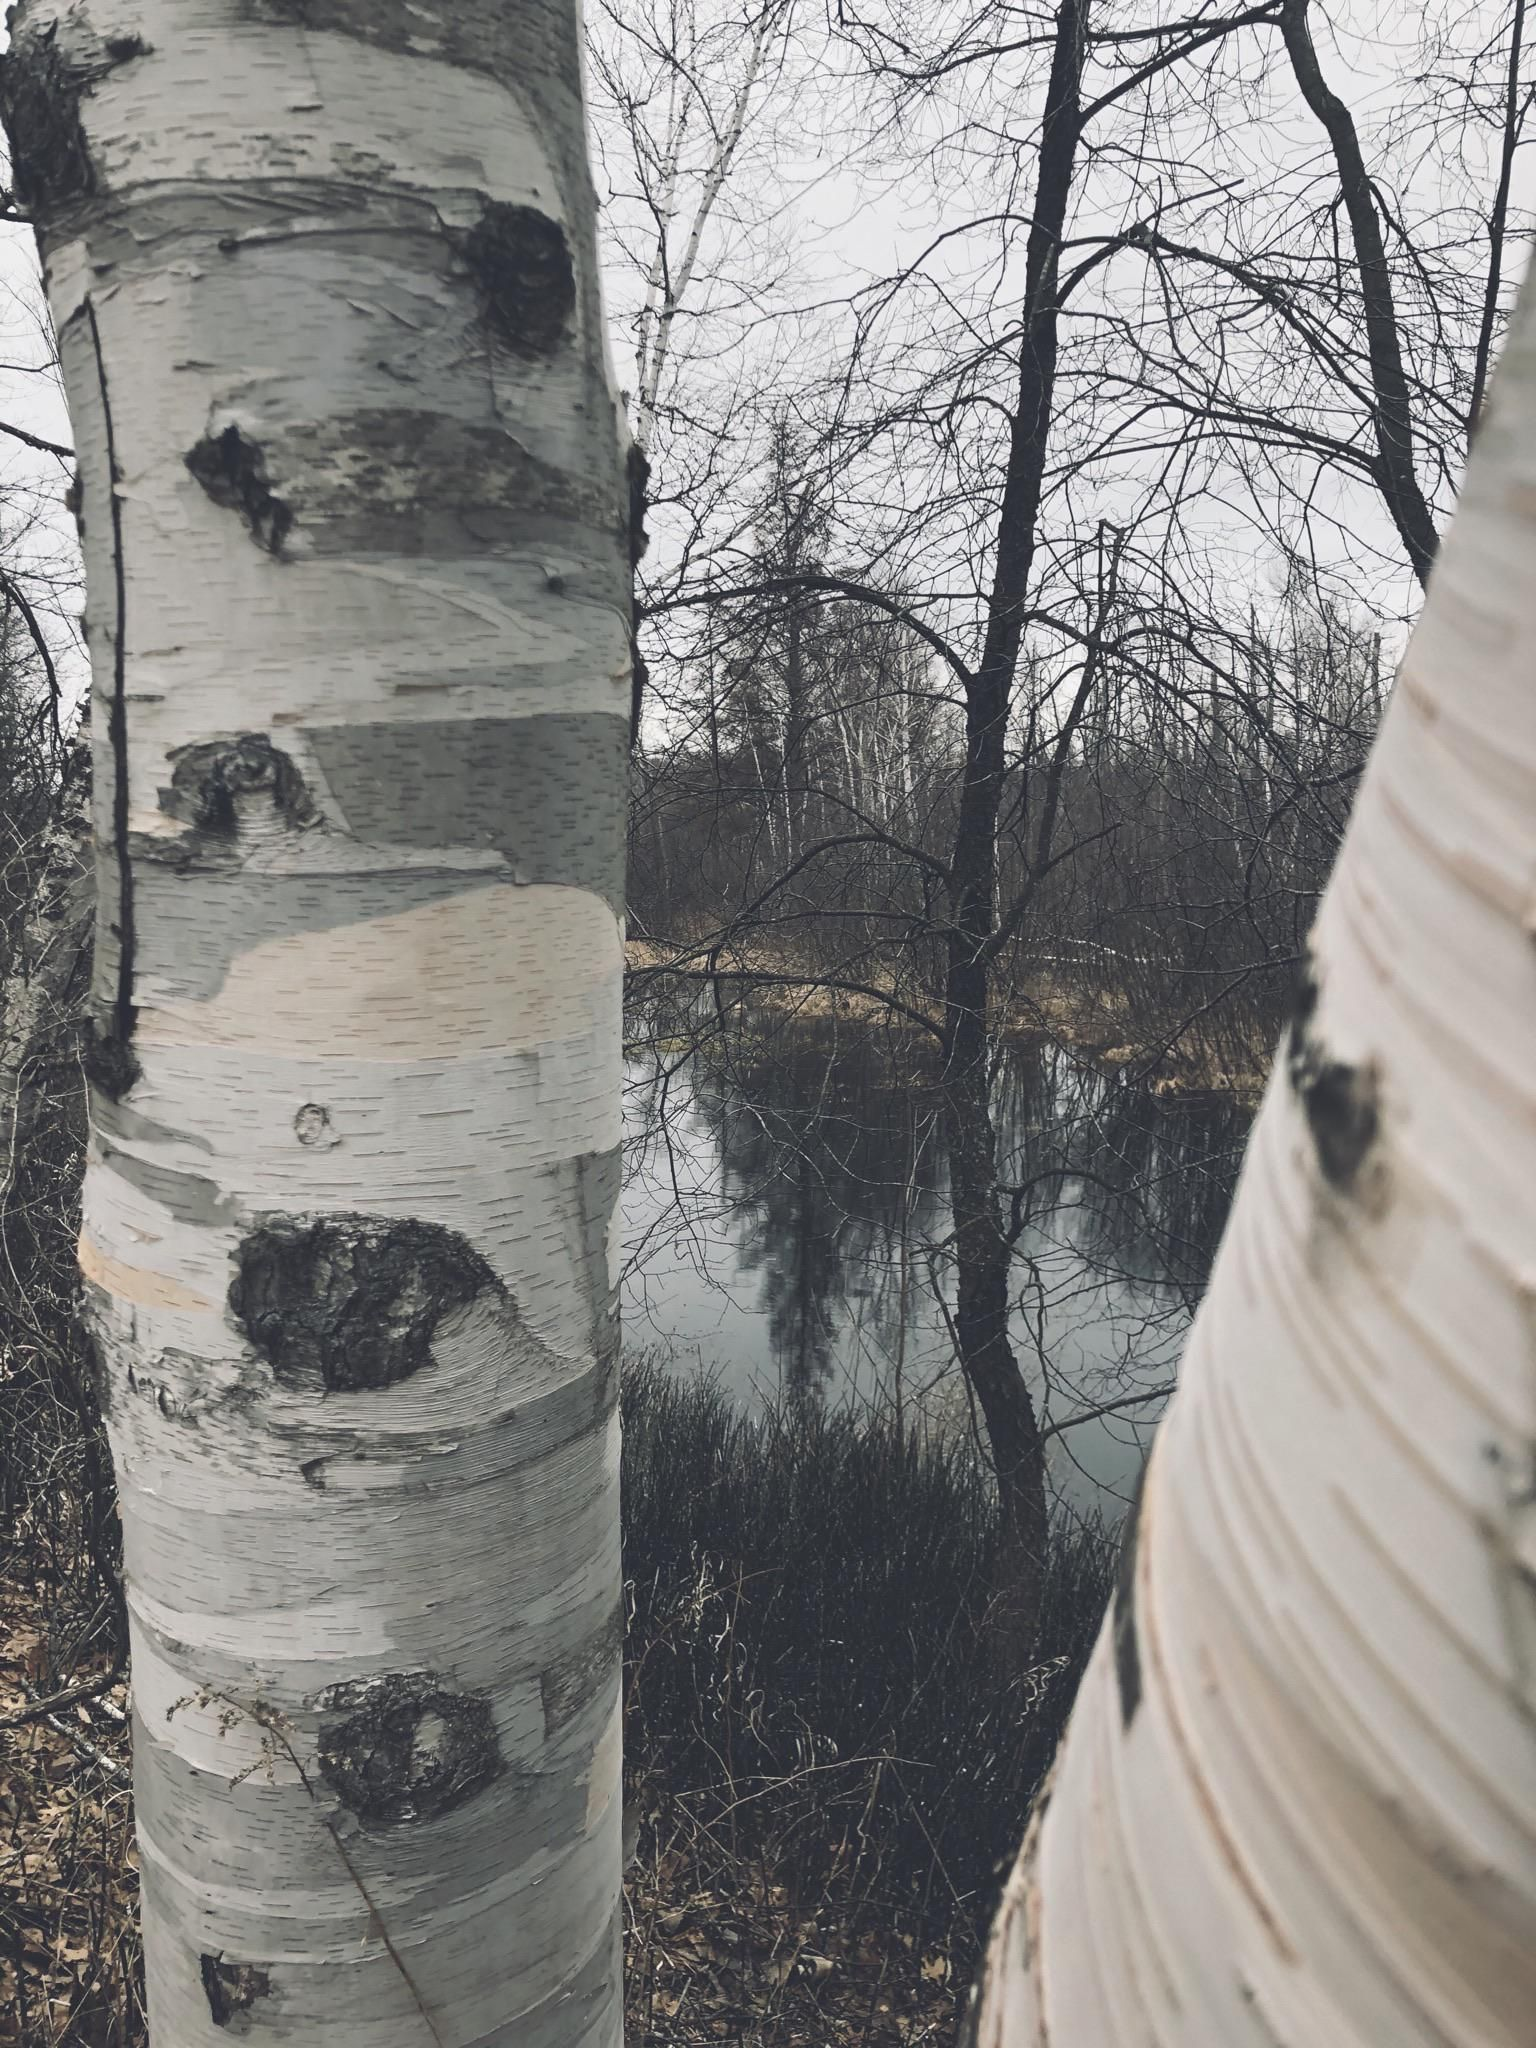 A birch tree. Au Sable Mi. #nature #teesylvania #photos #amazingworld #world #amazingphotography #naturephotography #photography #incrediblephotos Check out teesylvania.com to find out how you can support the forests with style!